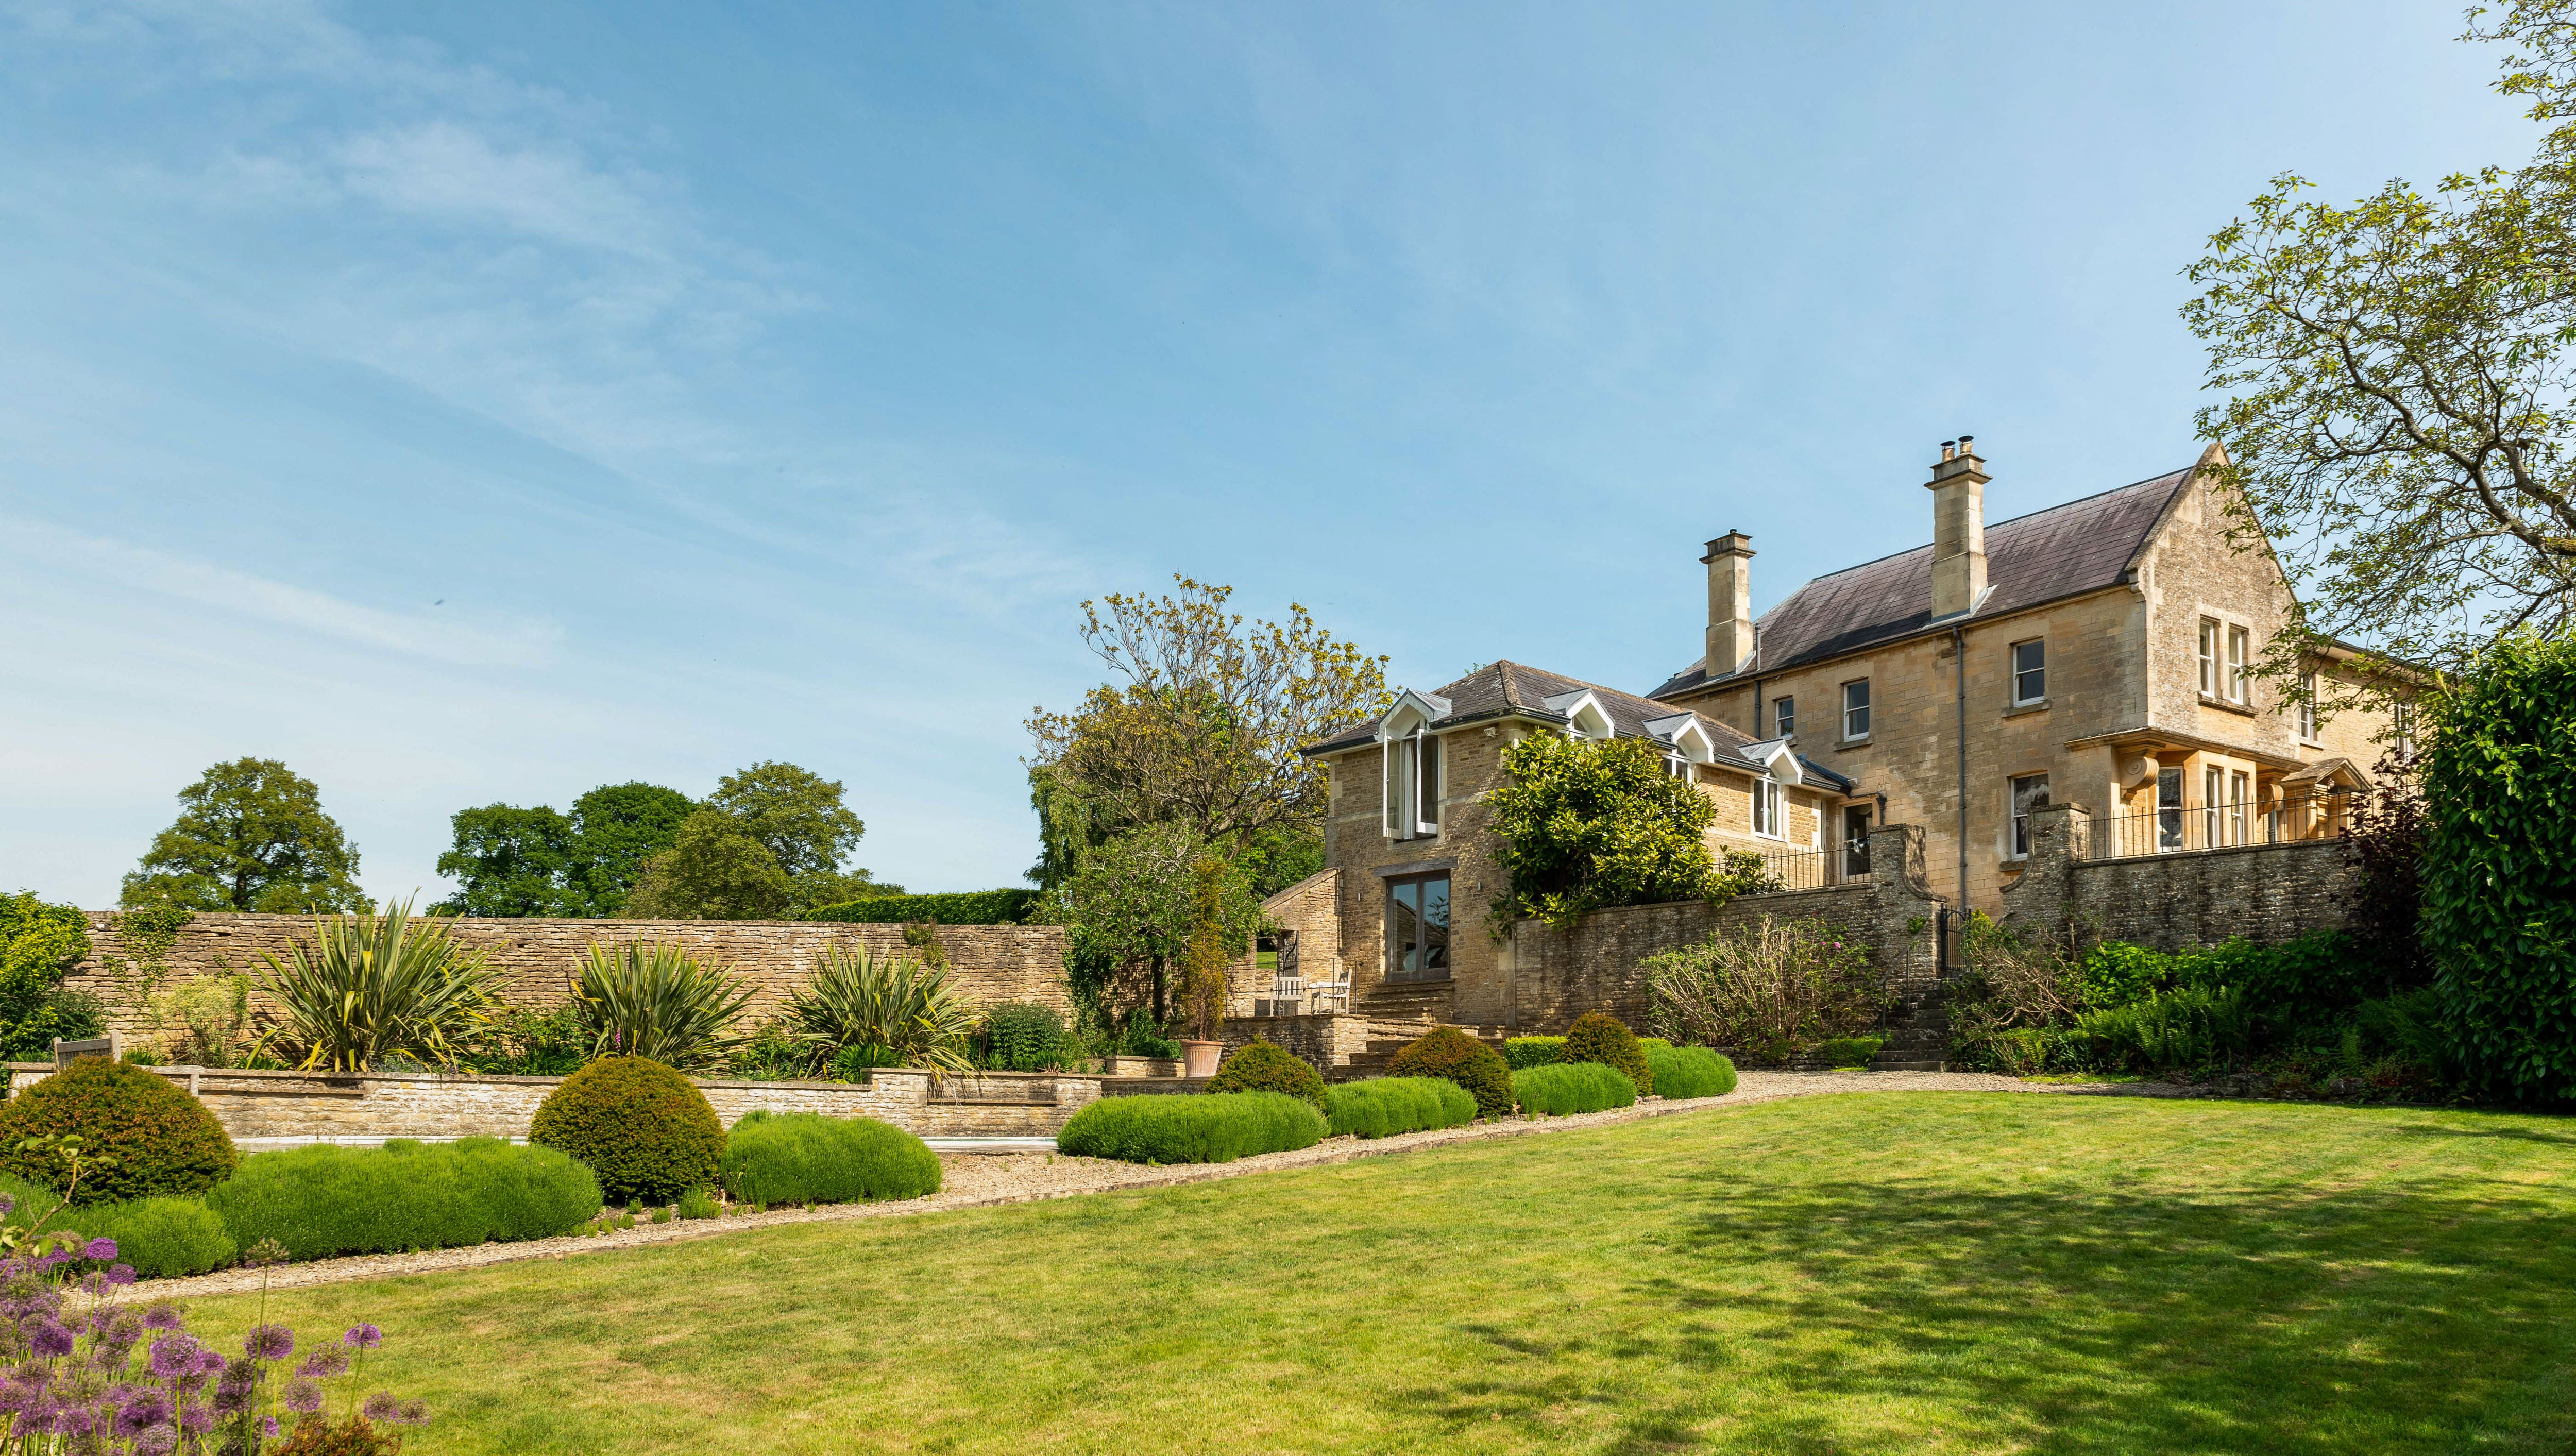 The Country House Department is an estate agent with expertise in rural homes around Oxford